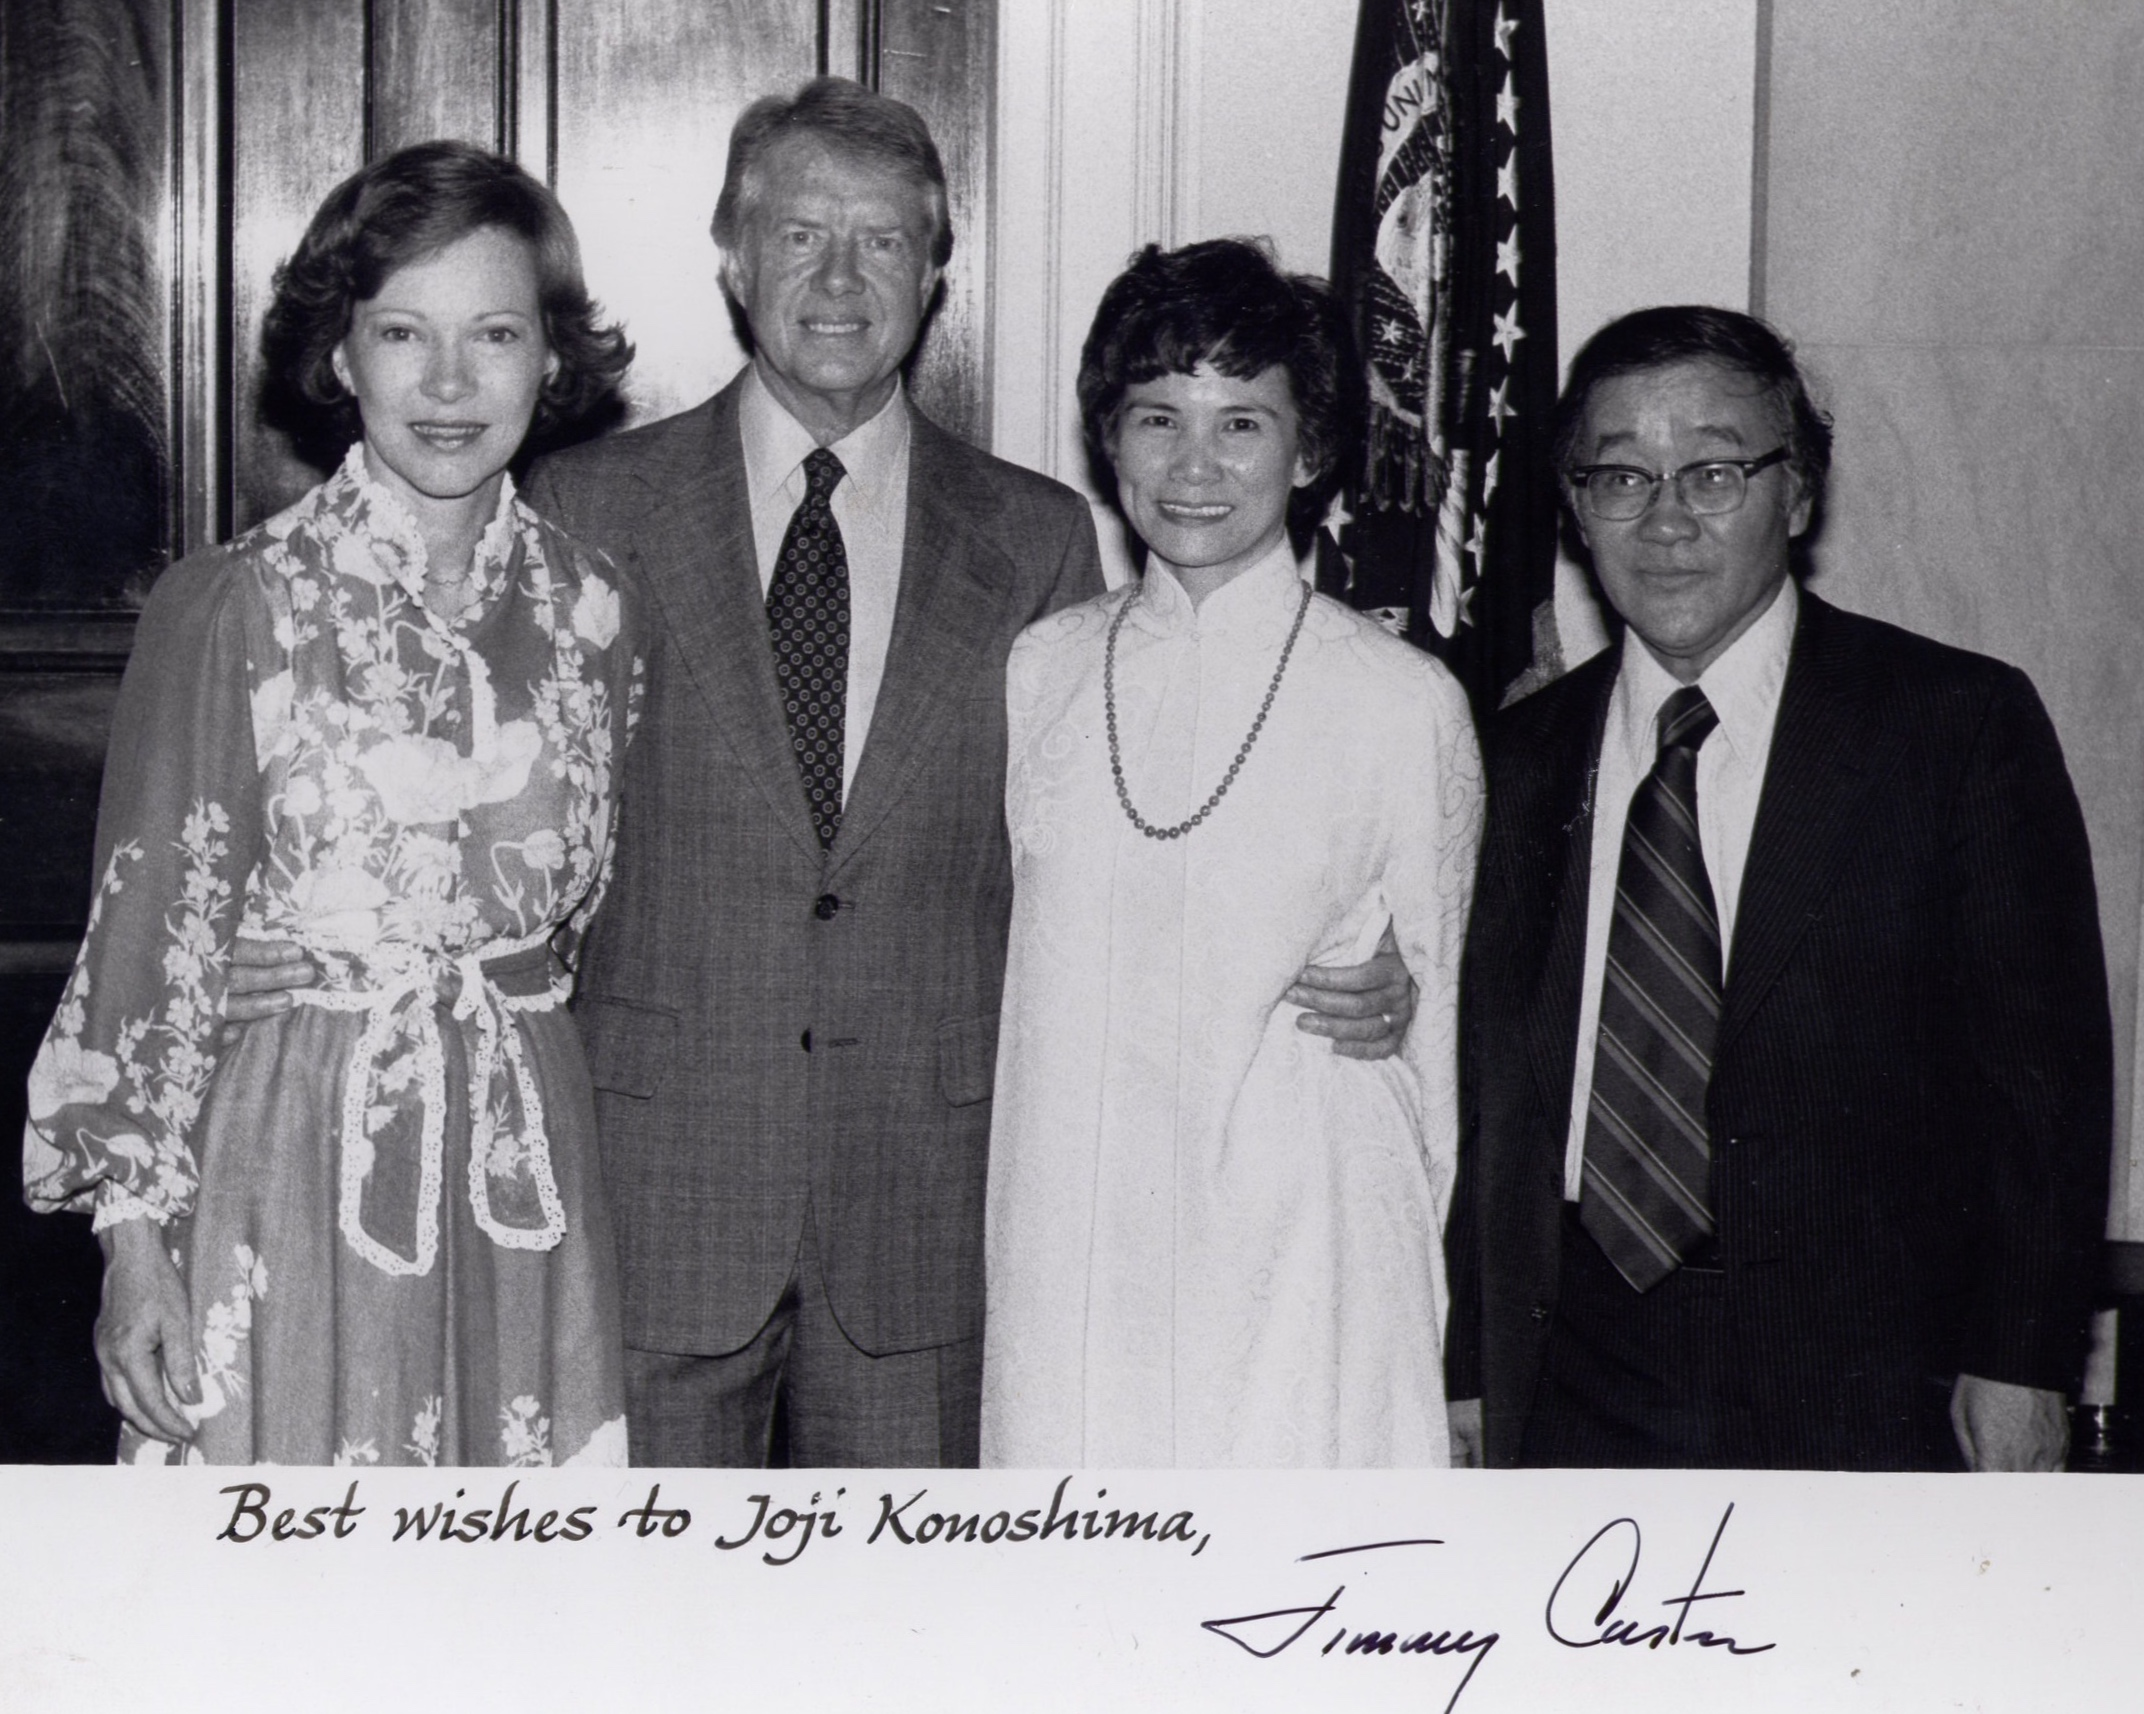 Lady Rosalynn Carter, President Jimmy Carter, and Co-founders Esther G. Kee and Joji Konoshima at the White House in 1978.